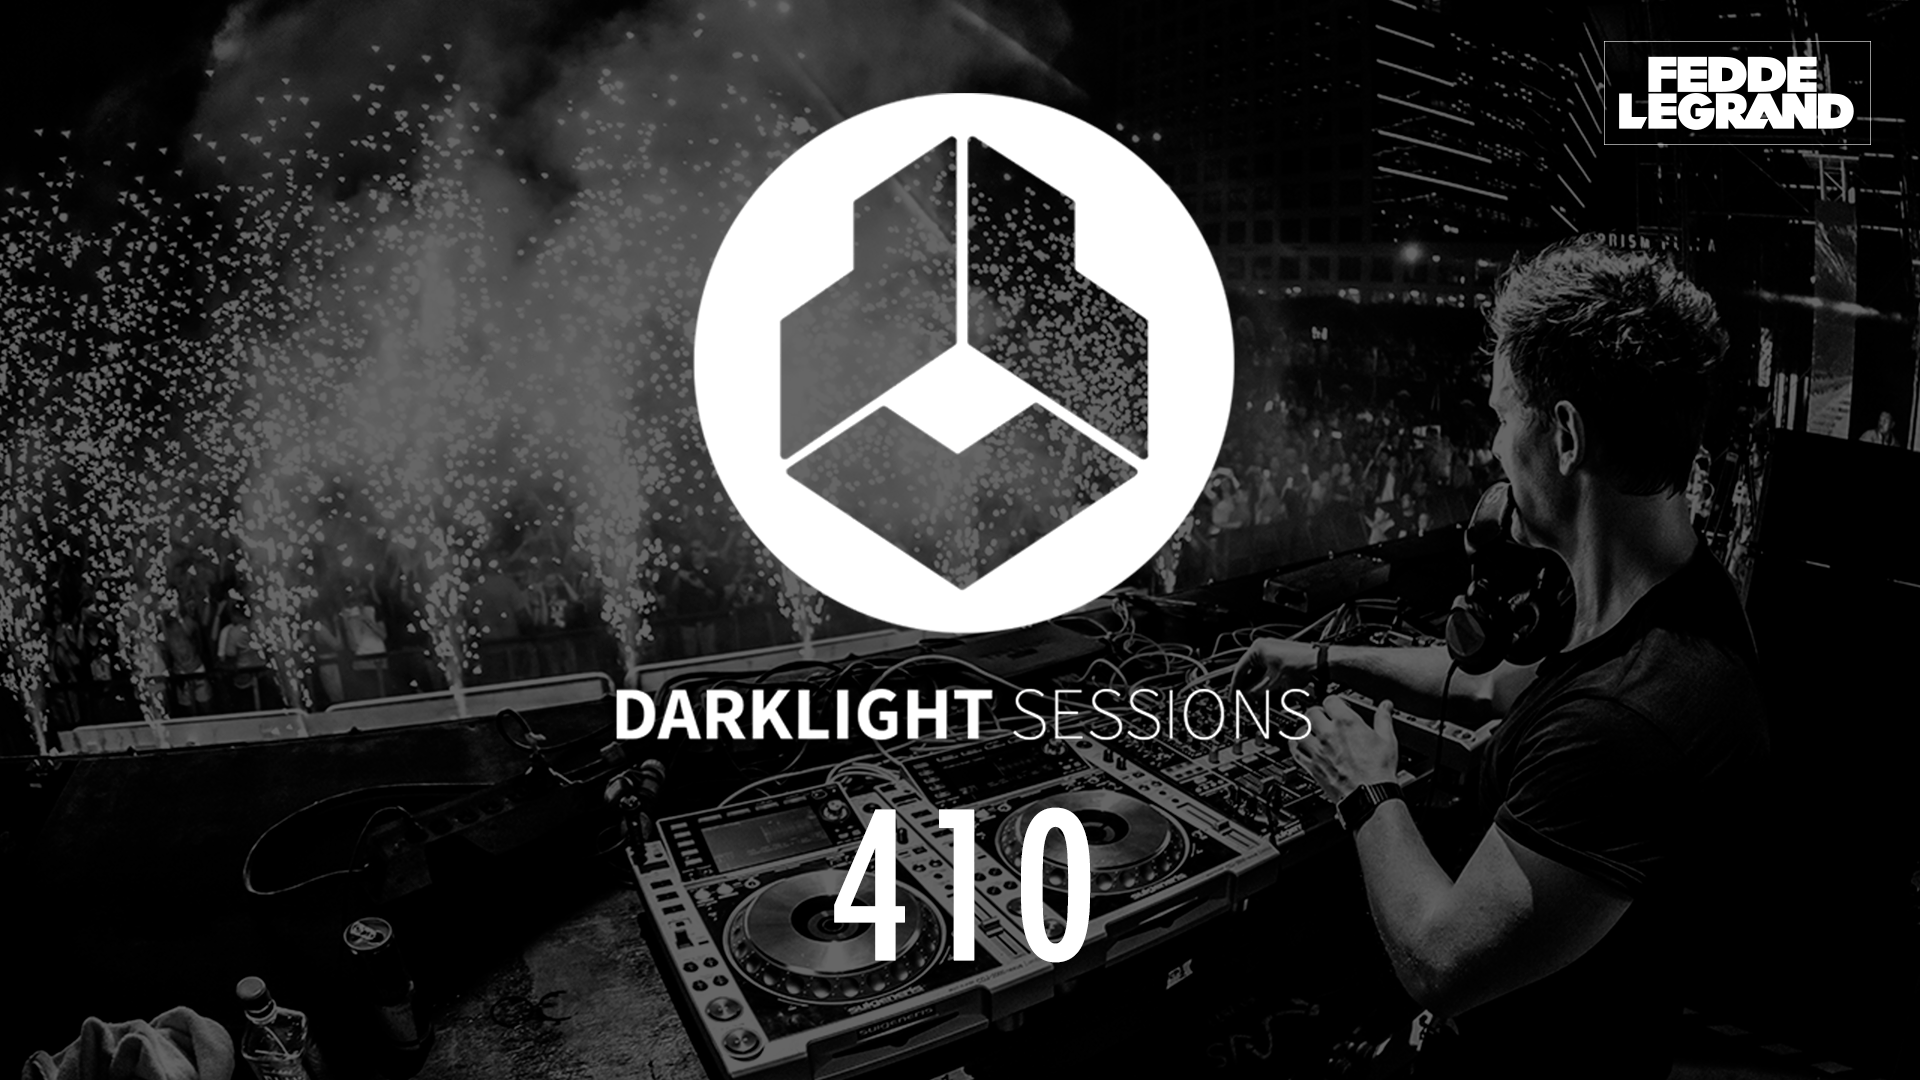 Darklight Sessions 410